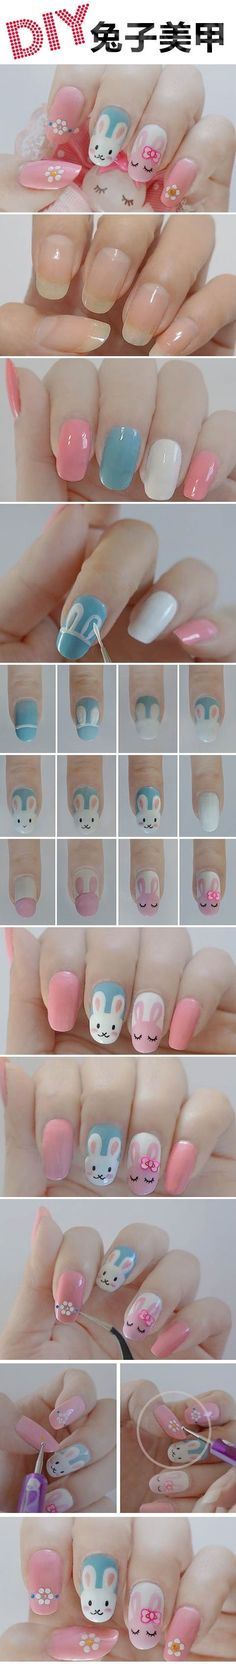 How to: Nail Art